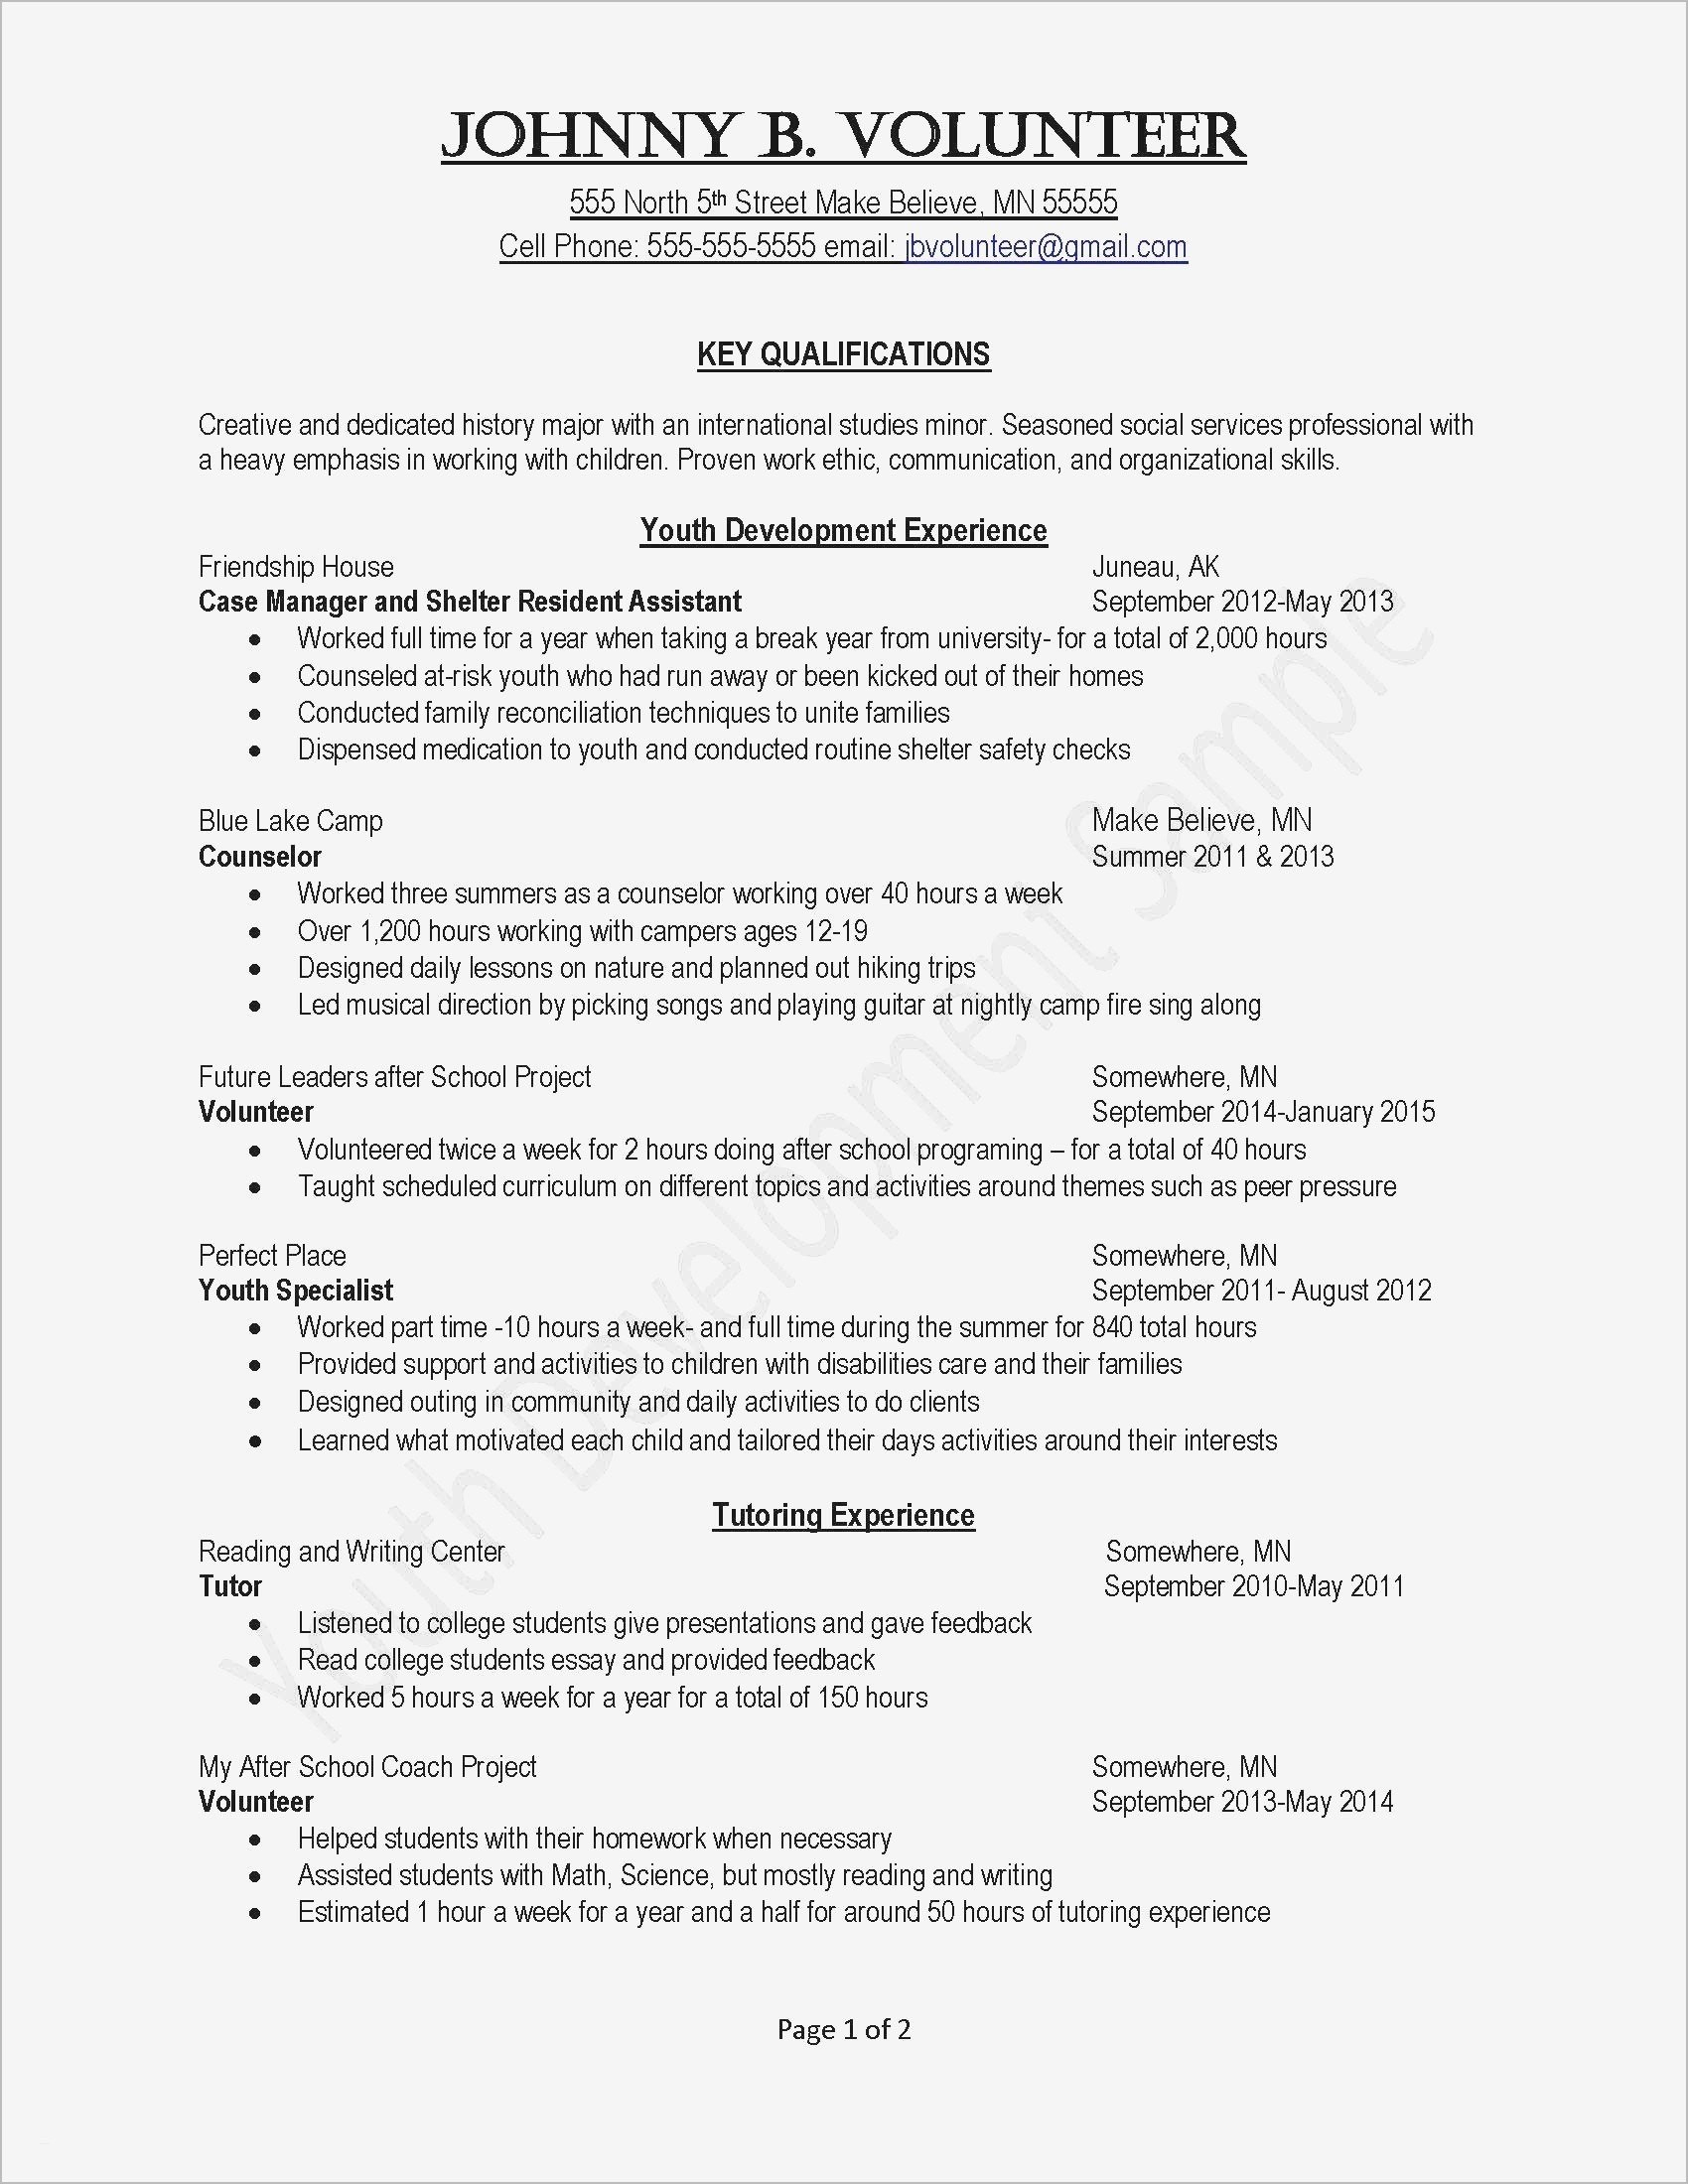 finance resume template example-Finance Resume Template Best Cfo Resume Template Inspirational Actor Resumes 0d – Letter Templates 3-n